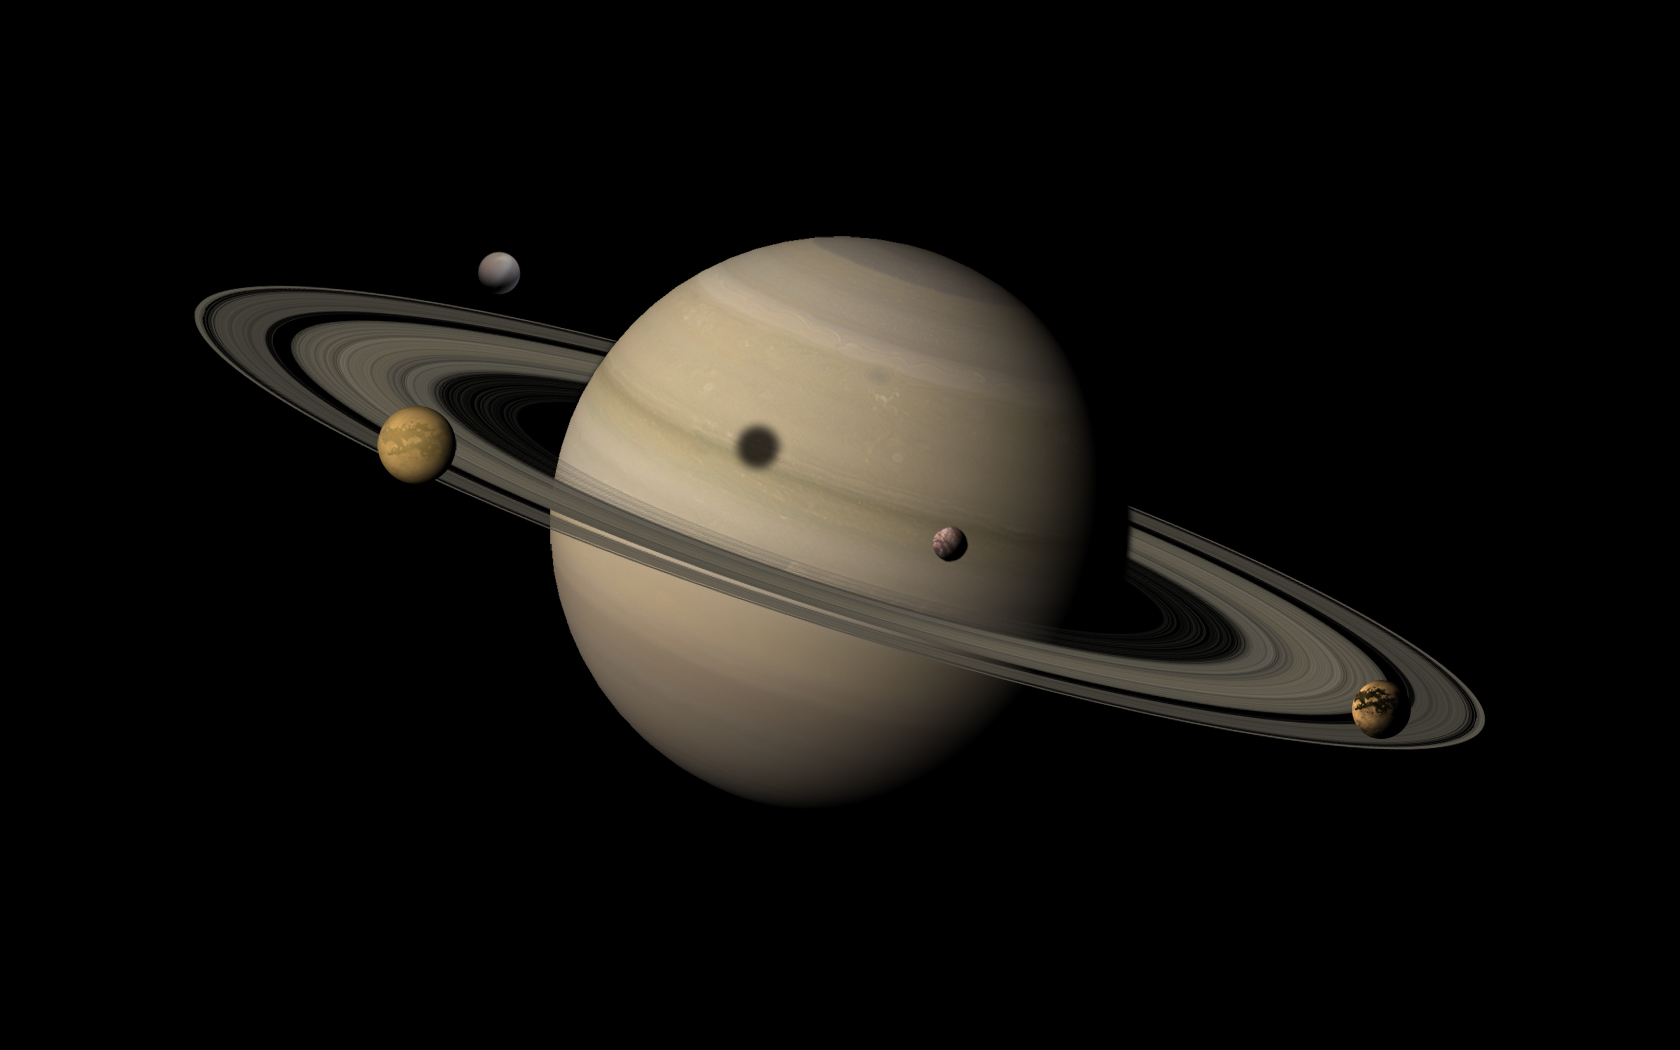 planet and saturn Saturn is the sixth planet from the sun and the second-largest in the solar system, after jupiter it is a gas giant with an average radius about nine times that of earth.